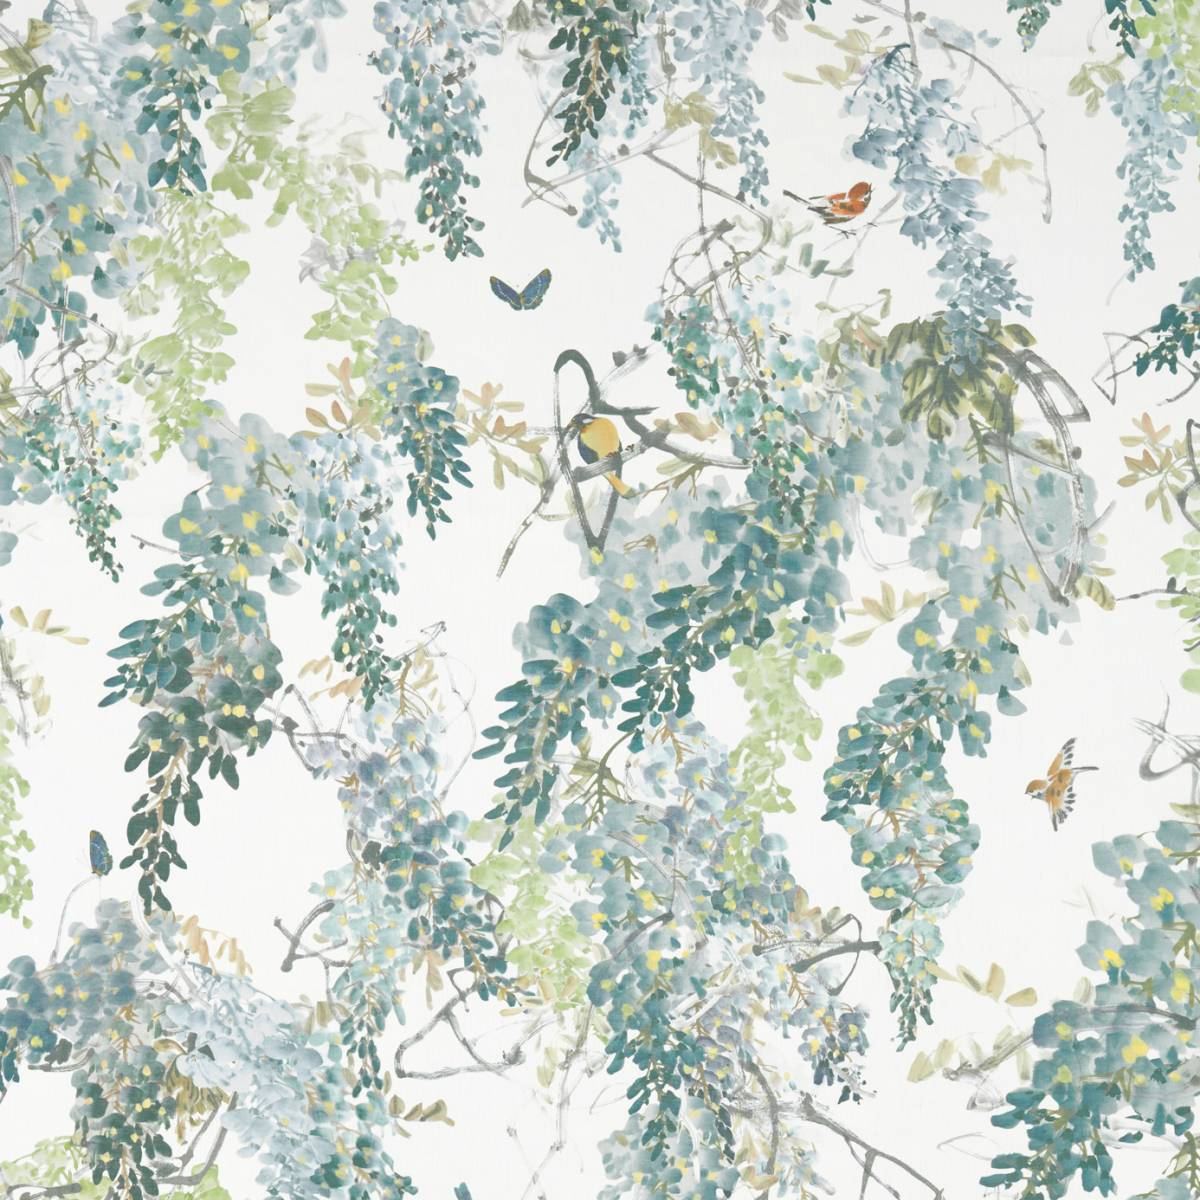 Sanderson Waterperry Prints & Embroideries Fabrics Wisteria Falls Fabric - Mineral - 226287. Loading zoom